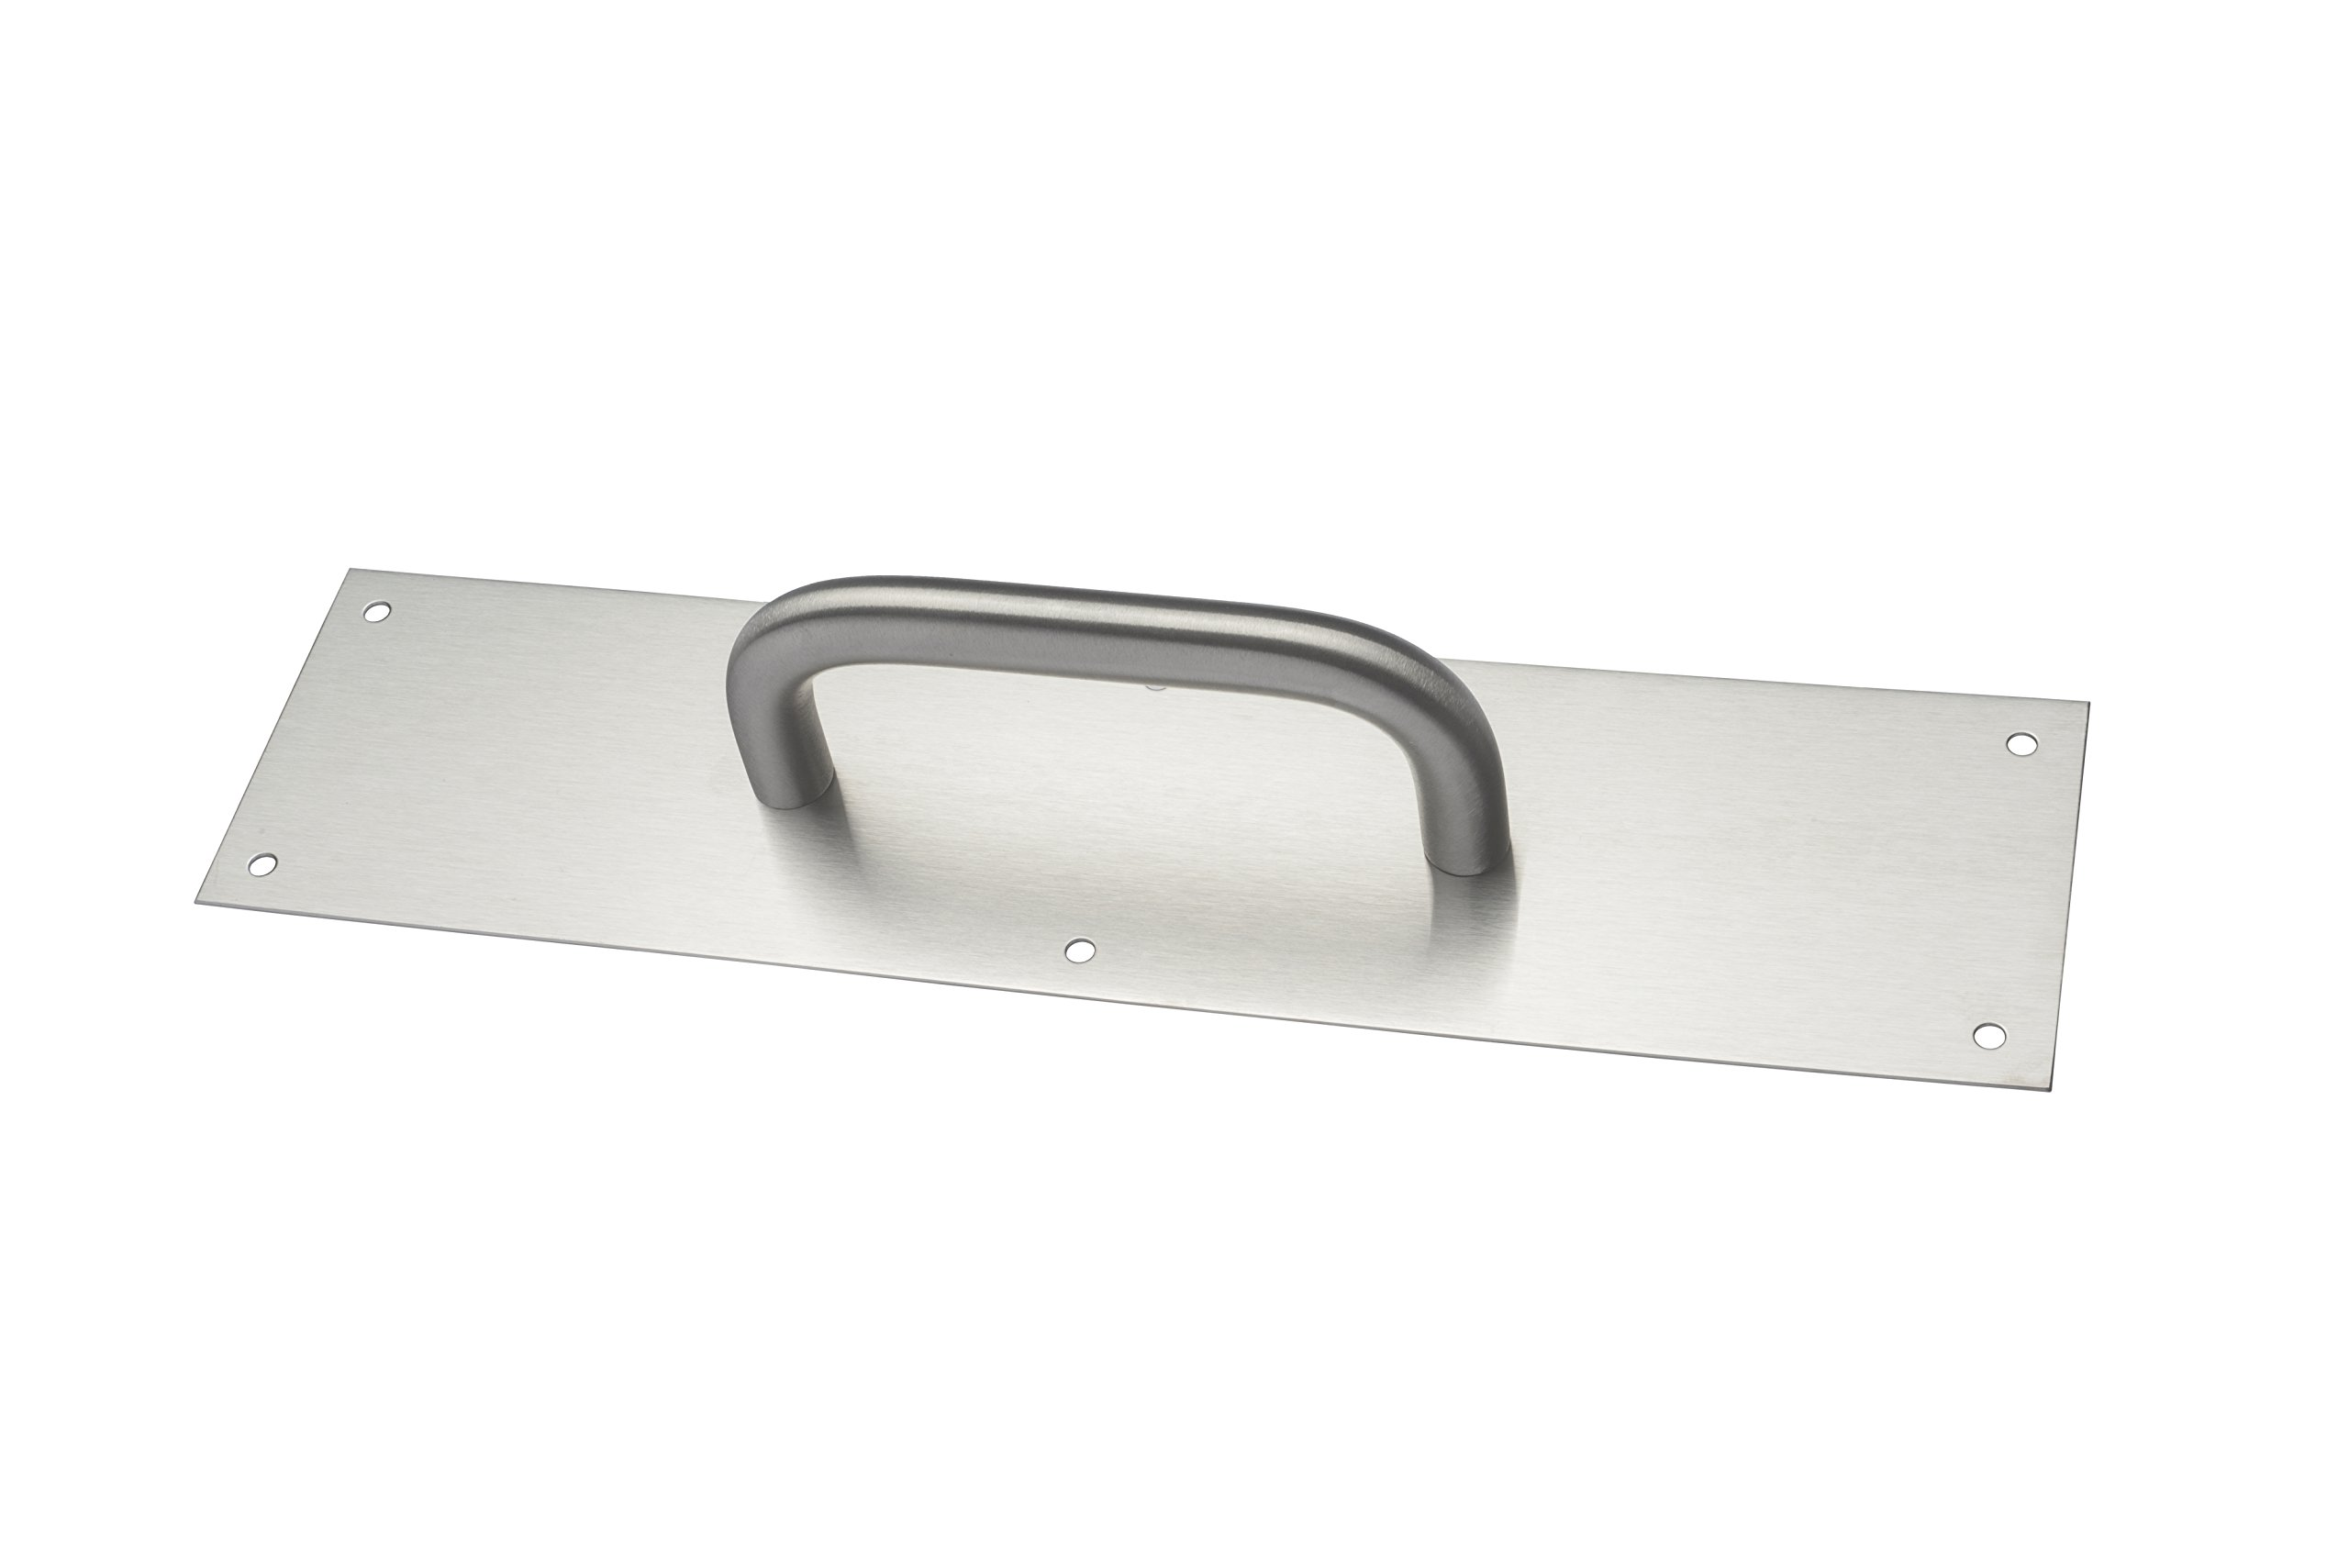 Rockwood 132 X 70C.26D Brass Cast Pull Plate 5-1//2 Center-to-Center Handle Length 16 Height x 4 Width x 0.050 Thick Satin Chrome Plated Finish